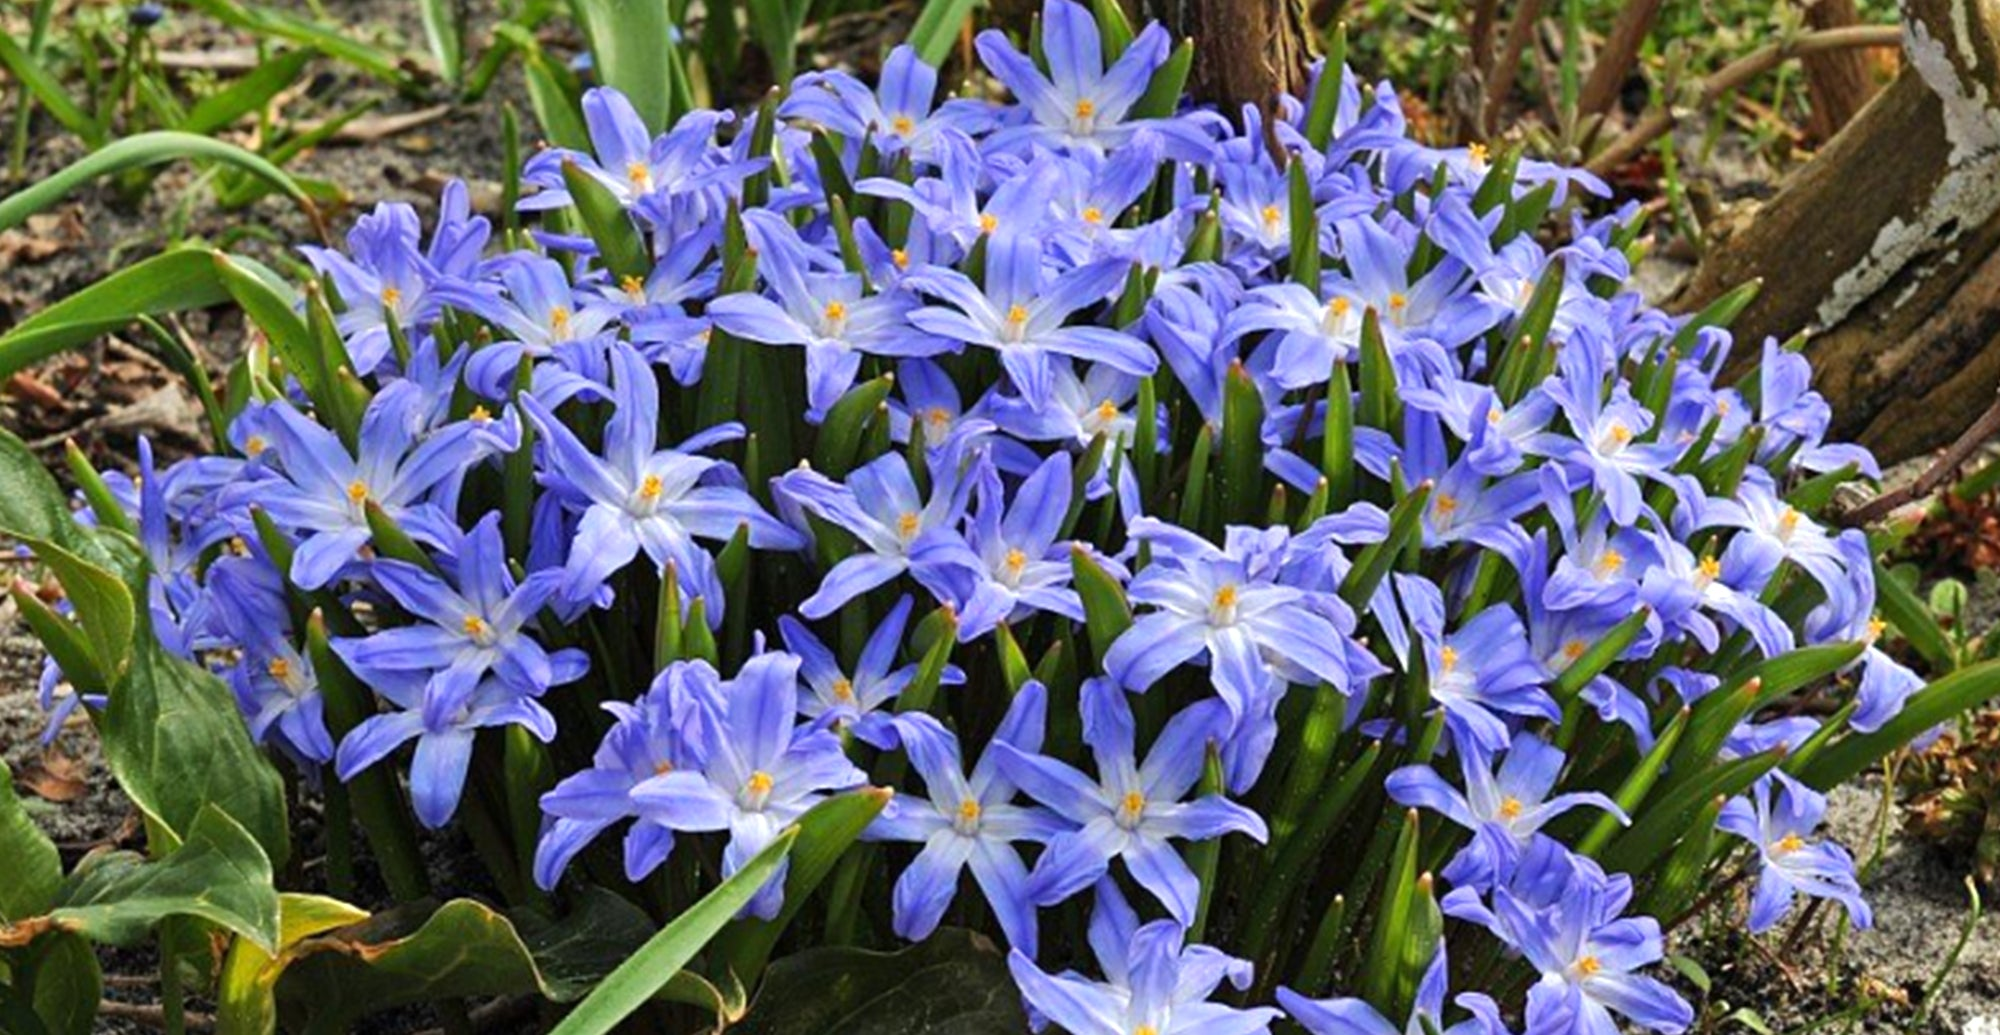 Growing Guides: How to grow Chionodoxa